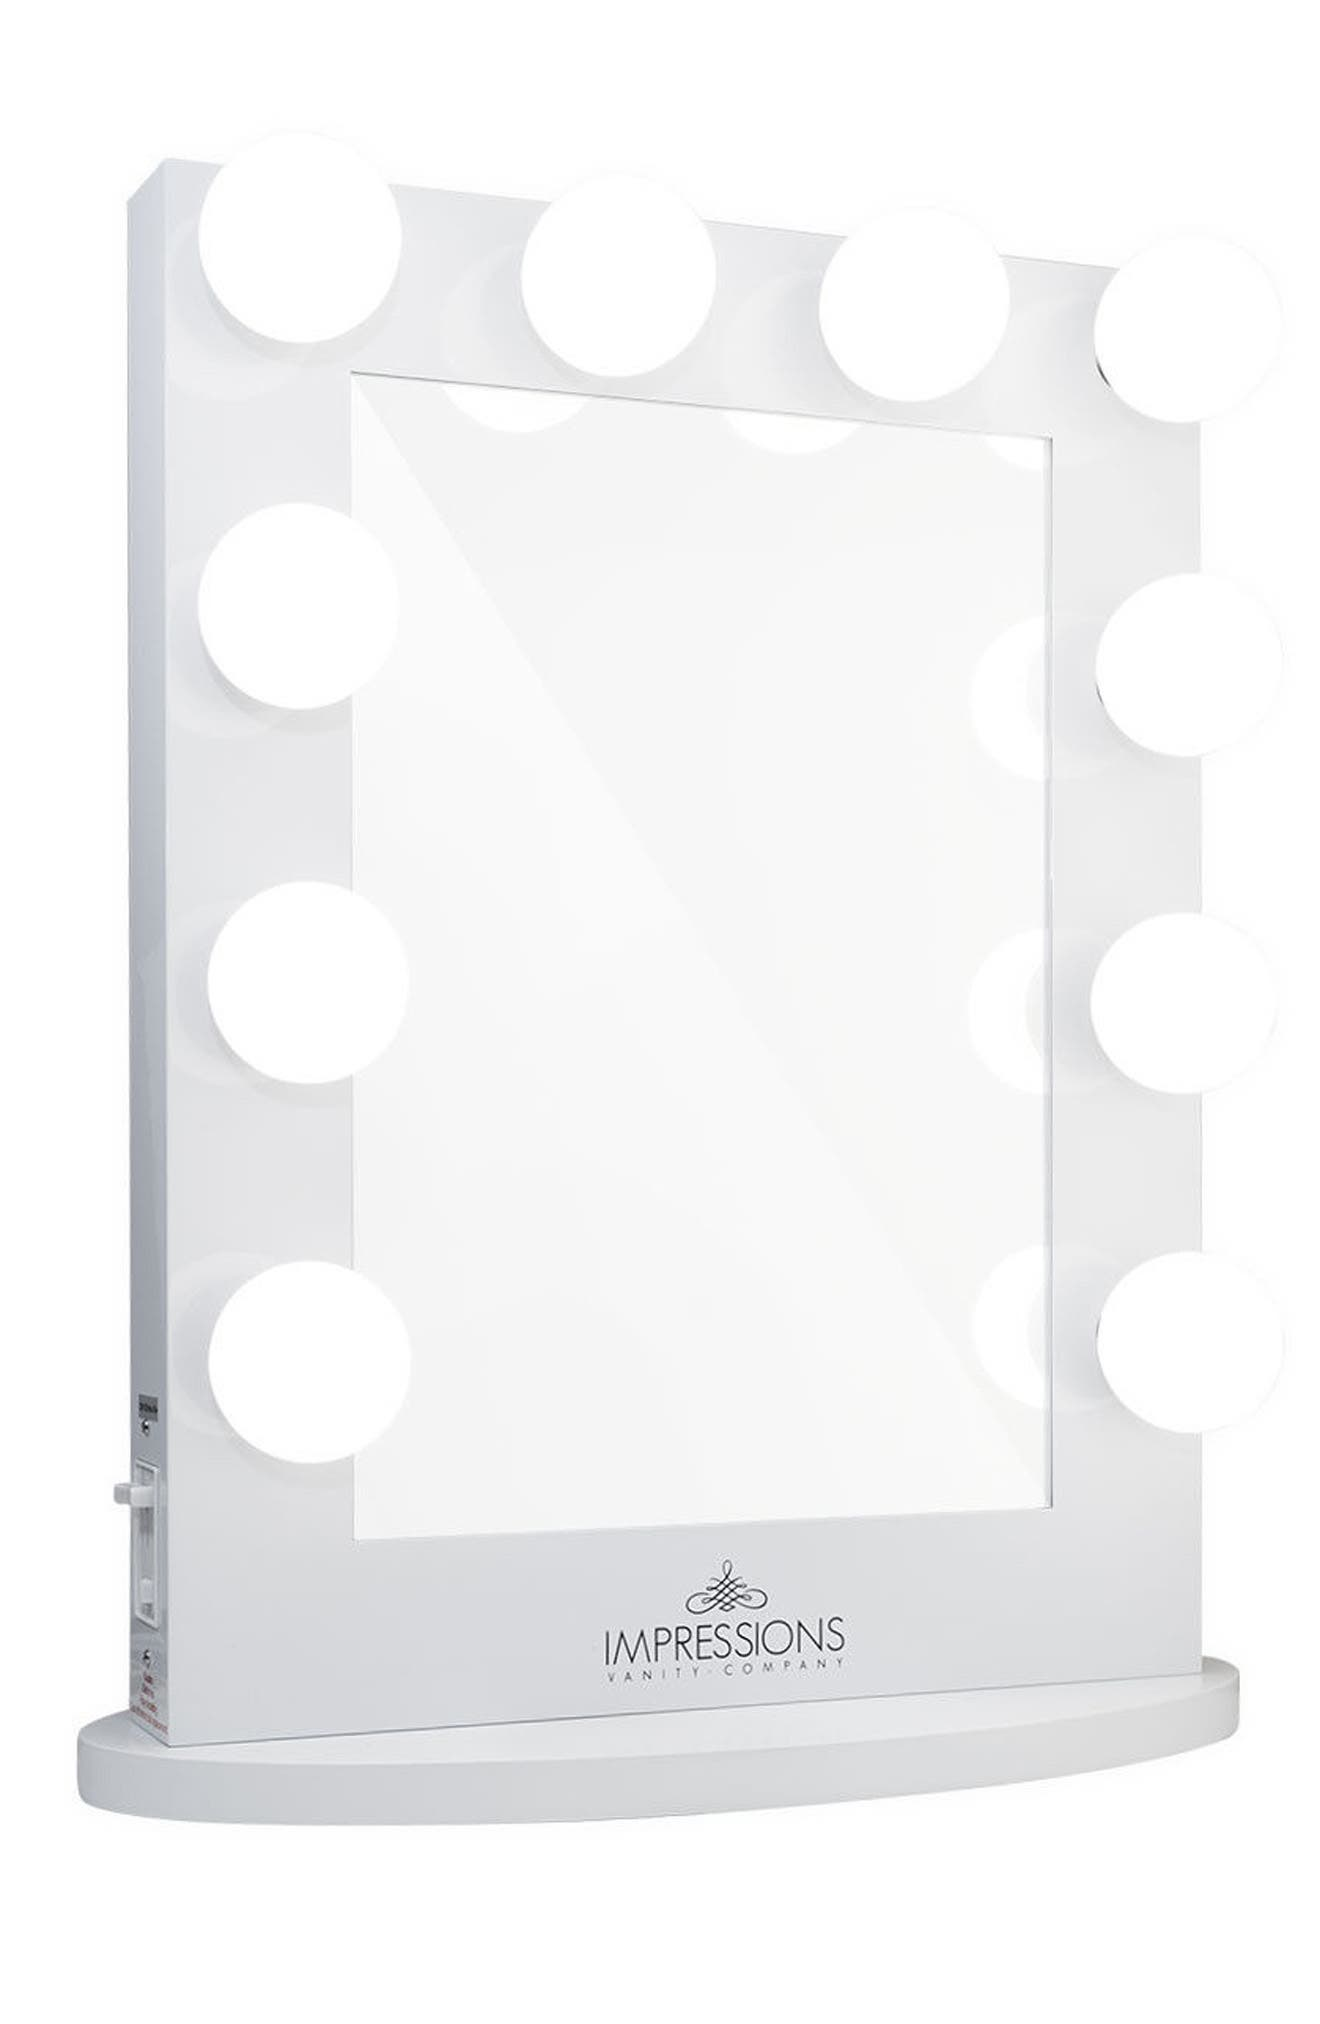 Impressions Vanity Co. Hollywood Iconic™ Vanity Mirror